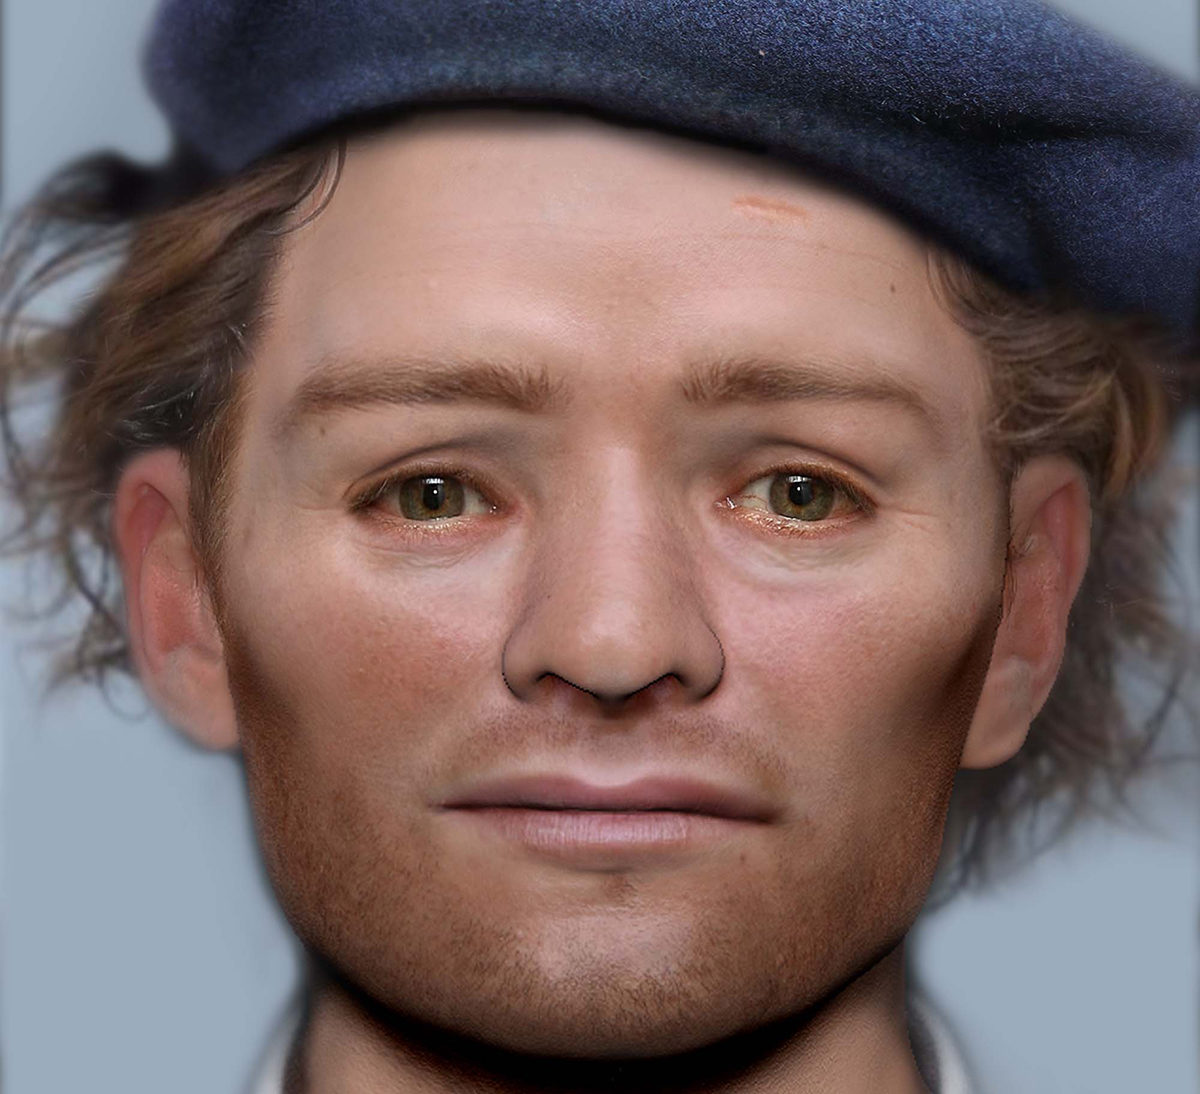 The face of one of the Scottish soldiers who was imprisoned and died in Durham  following the Battle of Dunbar in 1650. Credit: Face Lab LJMU